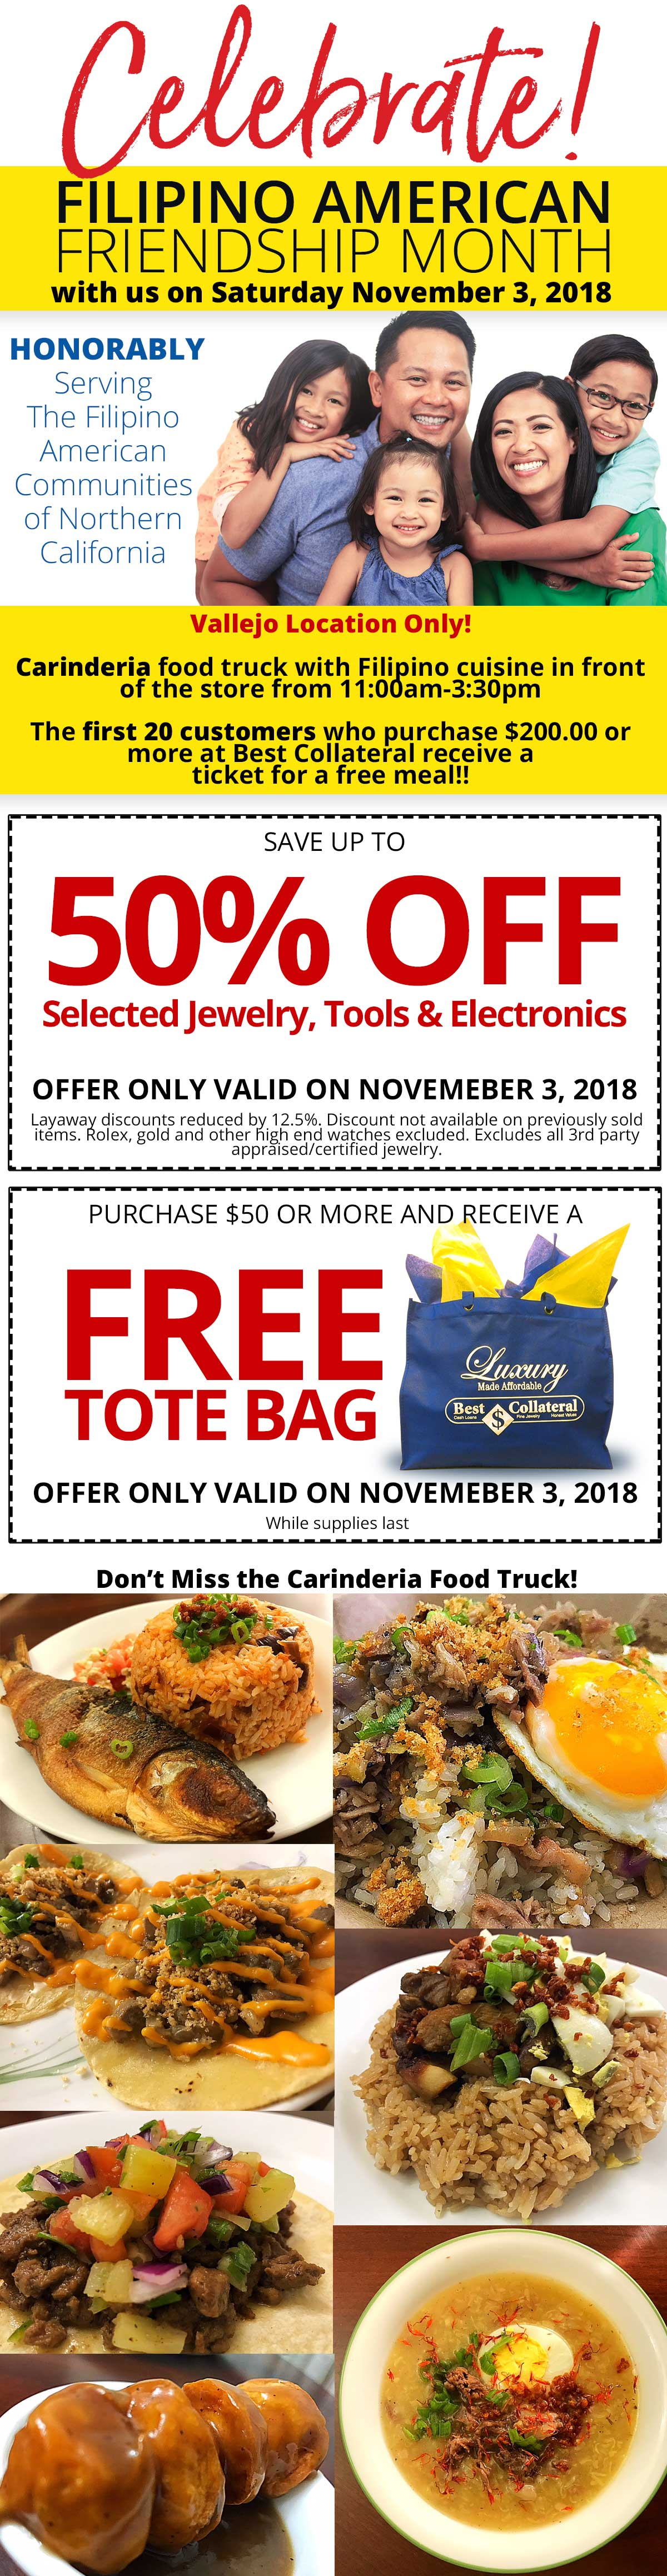 Join us Saturday, November 3, 2018 for Filipino American Friendship Day from 11:30am - 3pm. Enjoy Filipino Cuisine from Candaria Food Truck. The first 20 customers who purchase $200.00 or more Best Collateral will give the customer one meal ticket for a free meal!! Up to 55% off on selected jewelry, tools, electronics. Get your holiday shopping started early. Free tote bags for any purchase of 50.00 or more, while supplies last.Layaway discounts must be reduced by 12.5%. Offer cannot be combined with any other offer. Discount not available on previously sold merchandise. Excludes all 3rd party appraised/certified jewelry. Rolex, gold and other high end watches excluded. Click for Vallejo Store Info